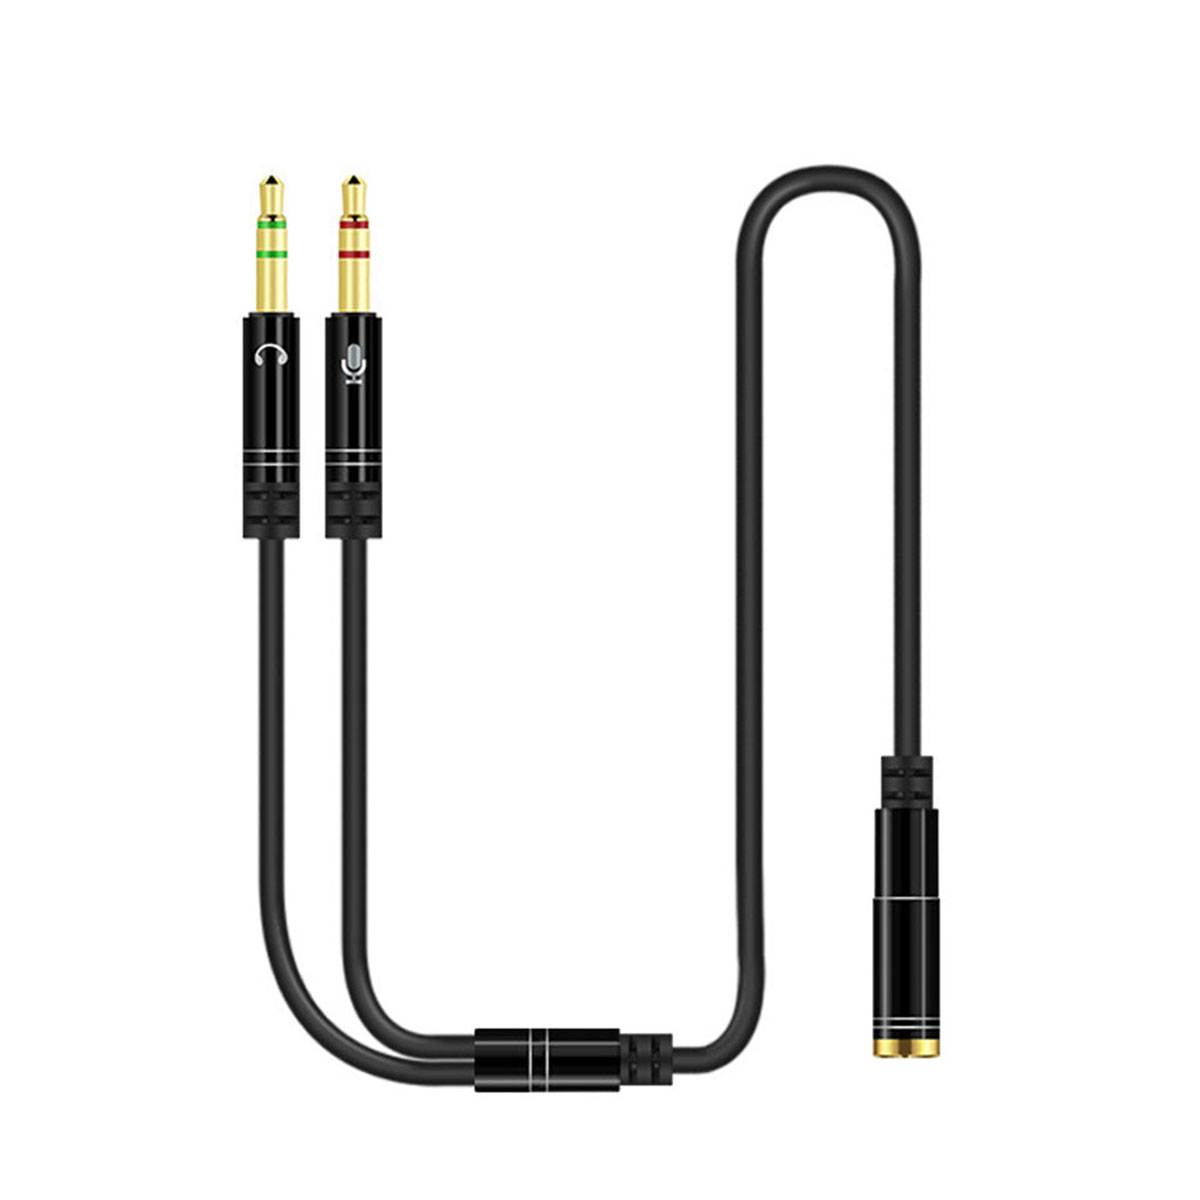 AUX 3.5mm Audio Mic Splitter Cable Female to 2 Male Headphone Microphone Adapter Pakistan